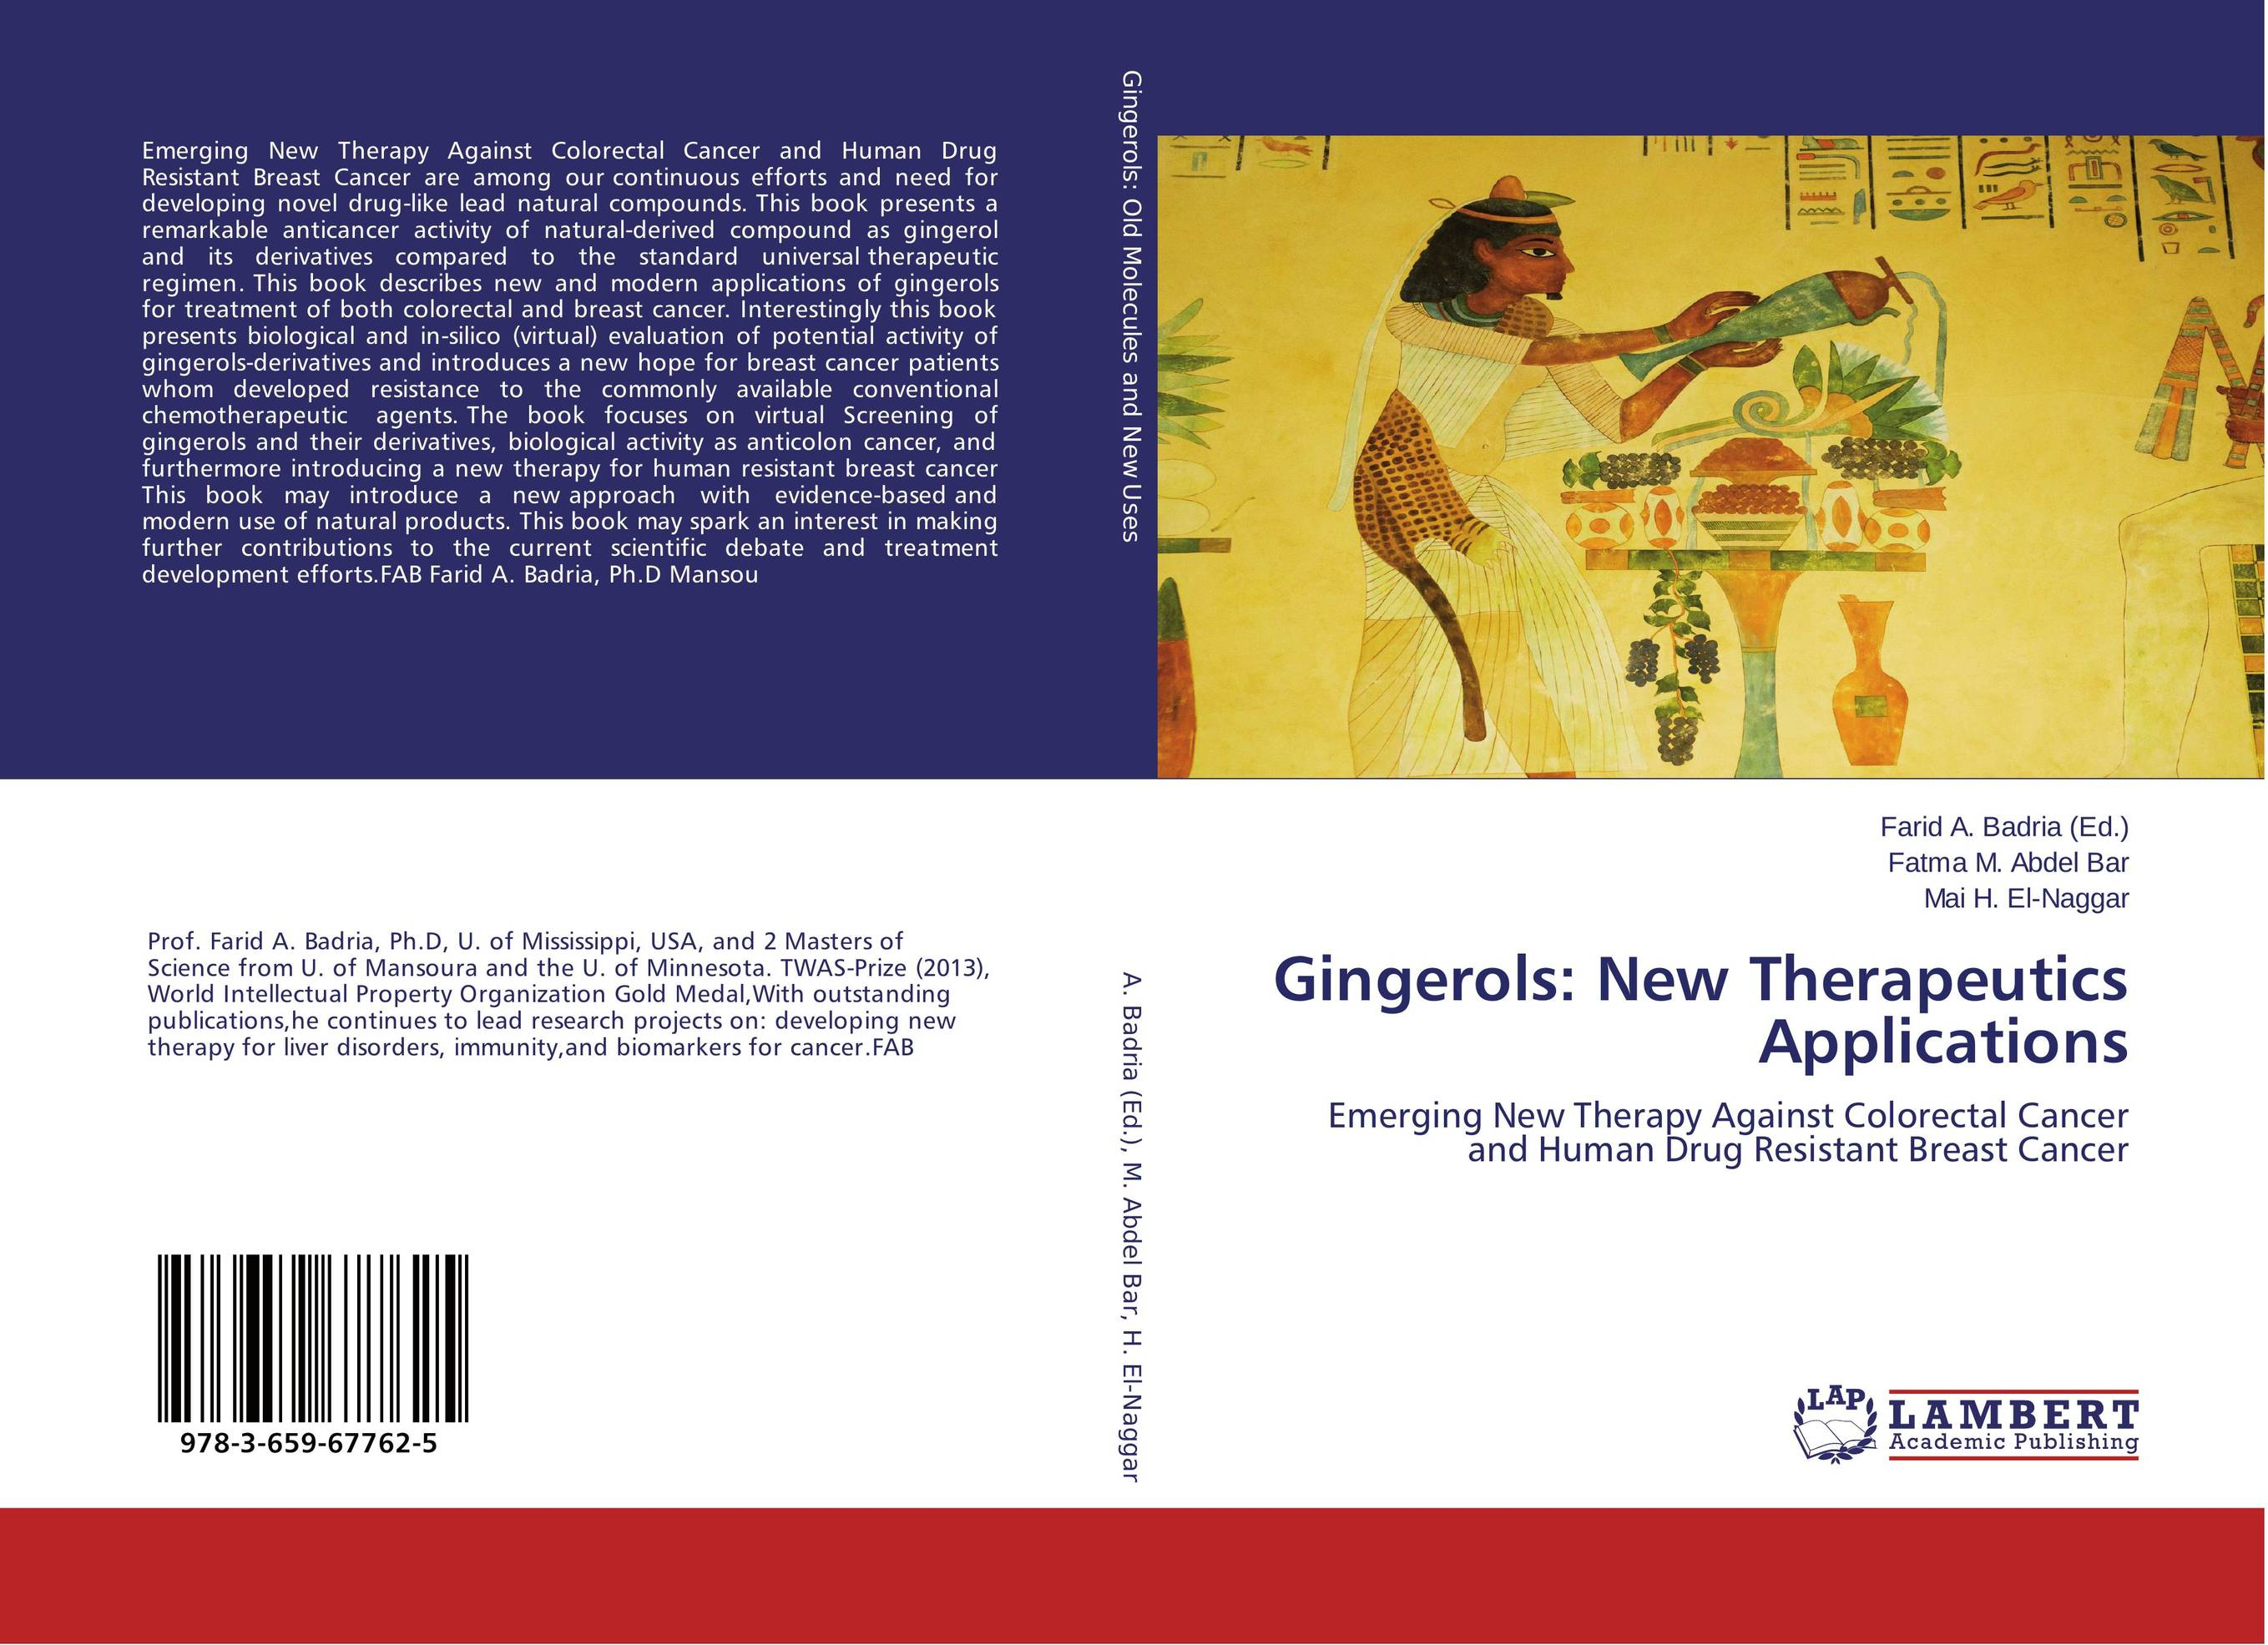 Gingerols: New Therapeutics Applications against colorectal cancer